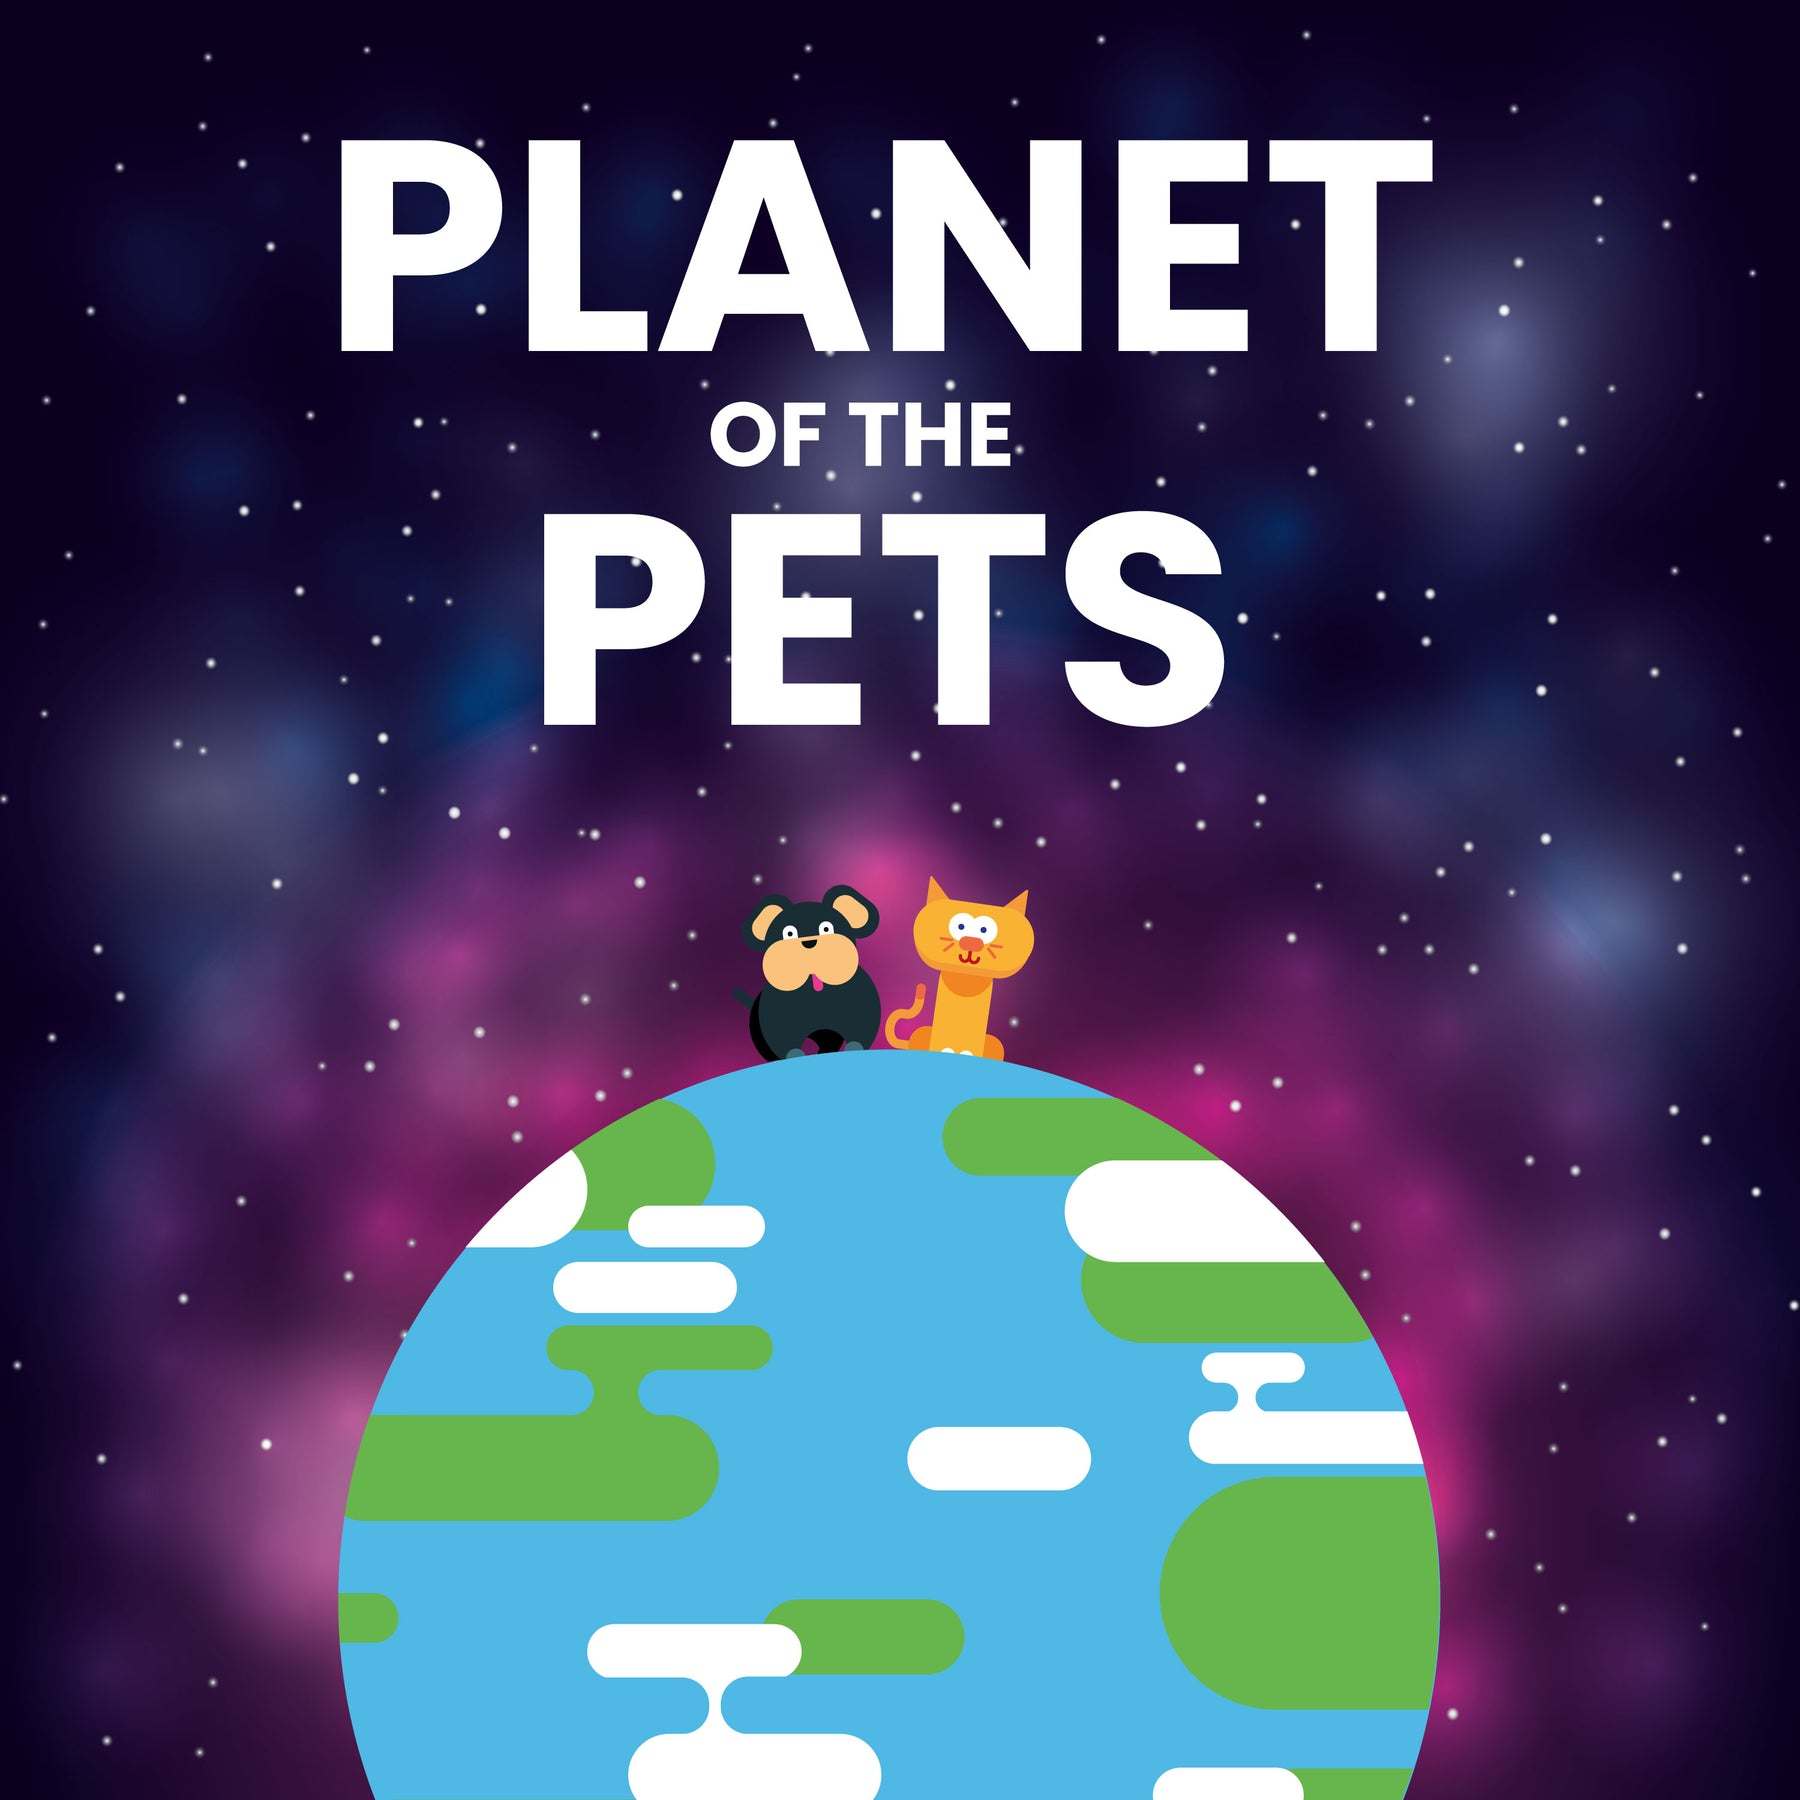 Episode 1: Planet of the Pets Podcast with Matthew Lamarand